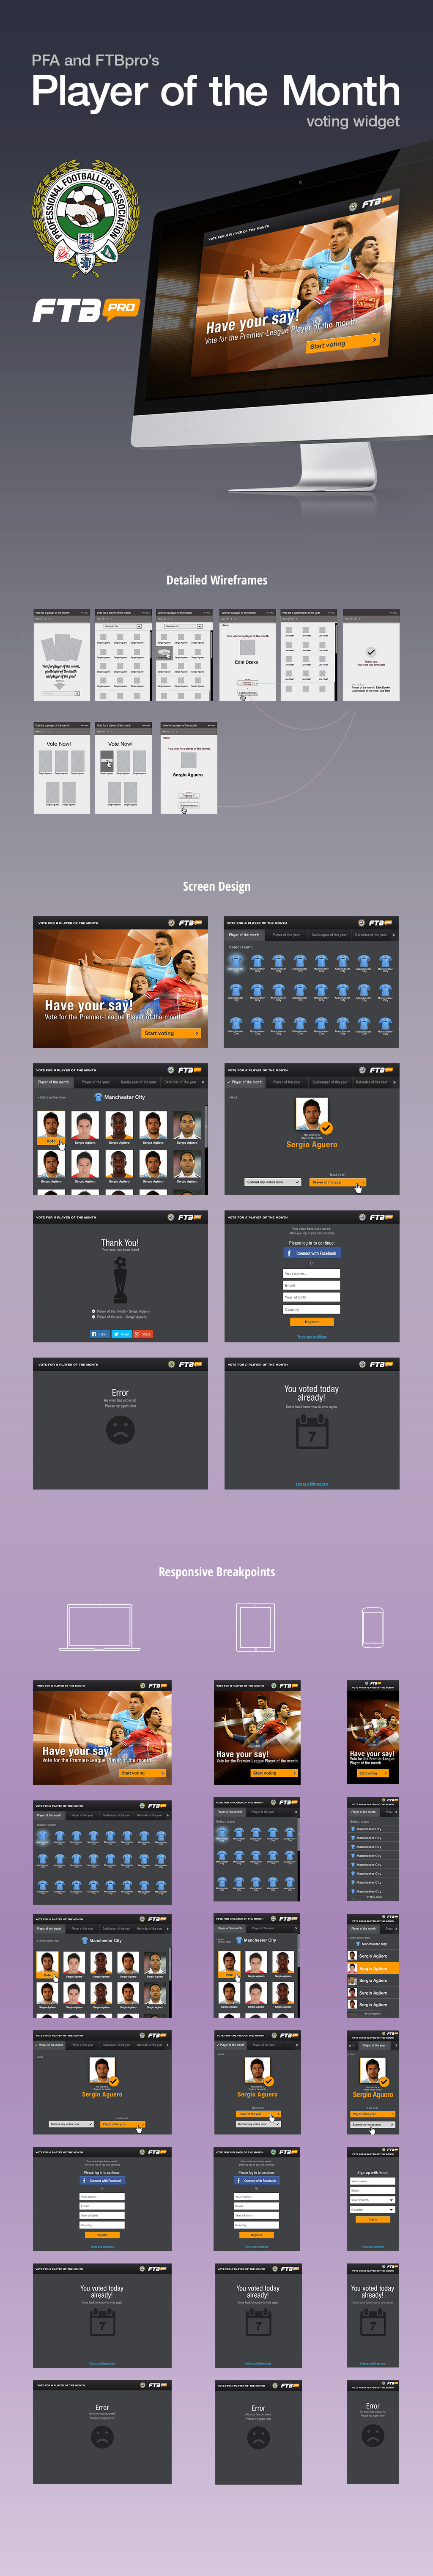 Player of the month FTBpro (90min) responsive voting widget.